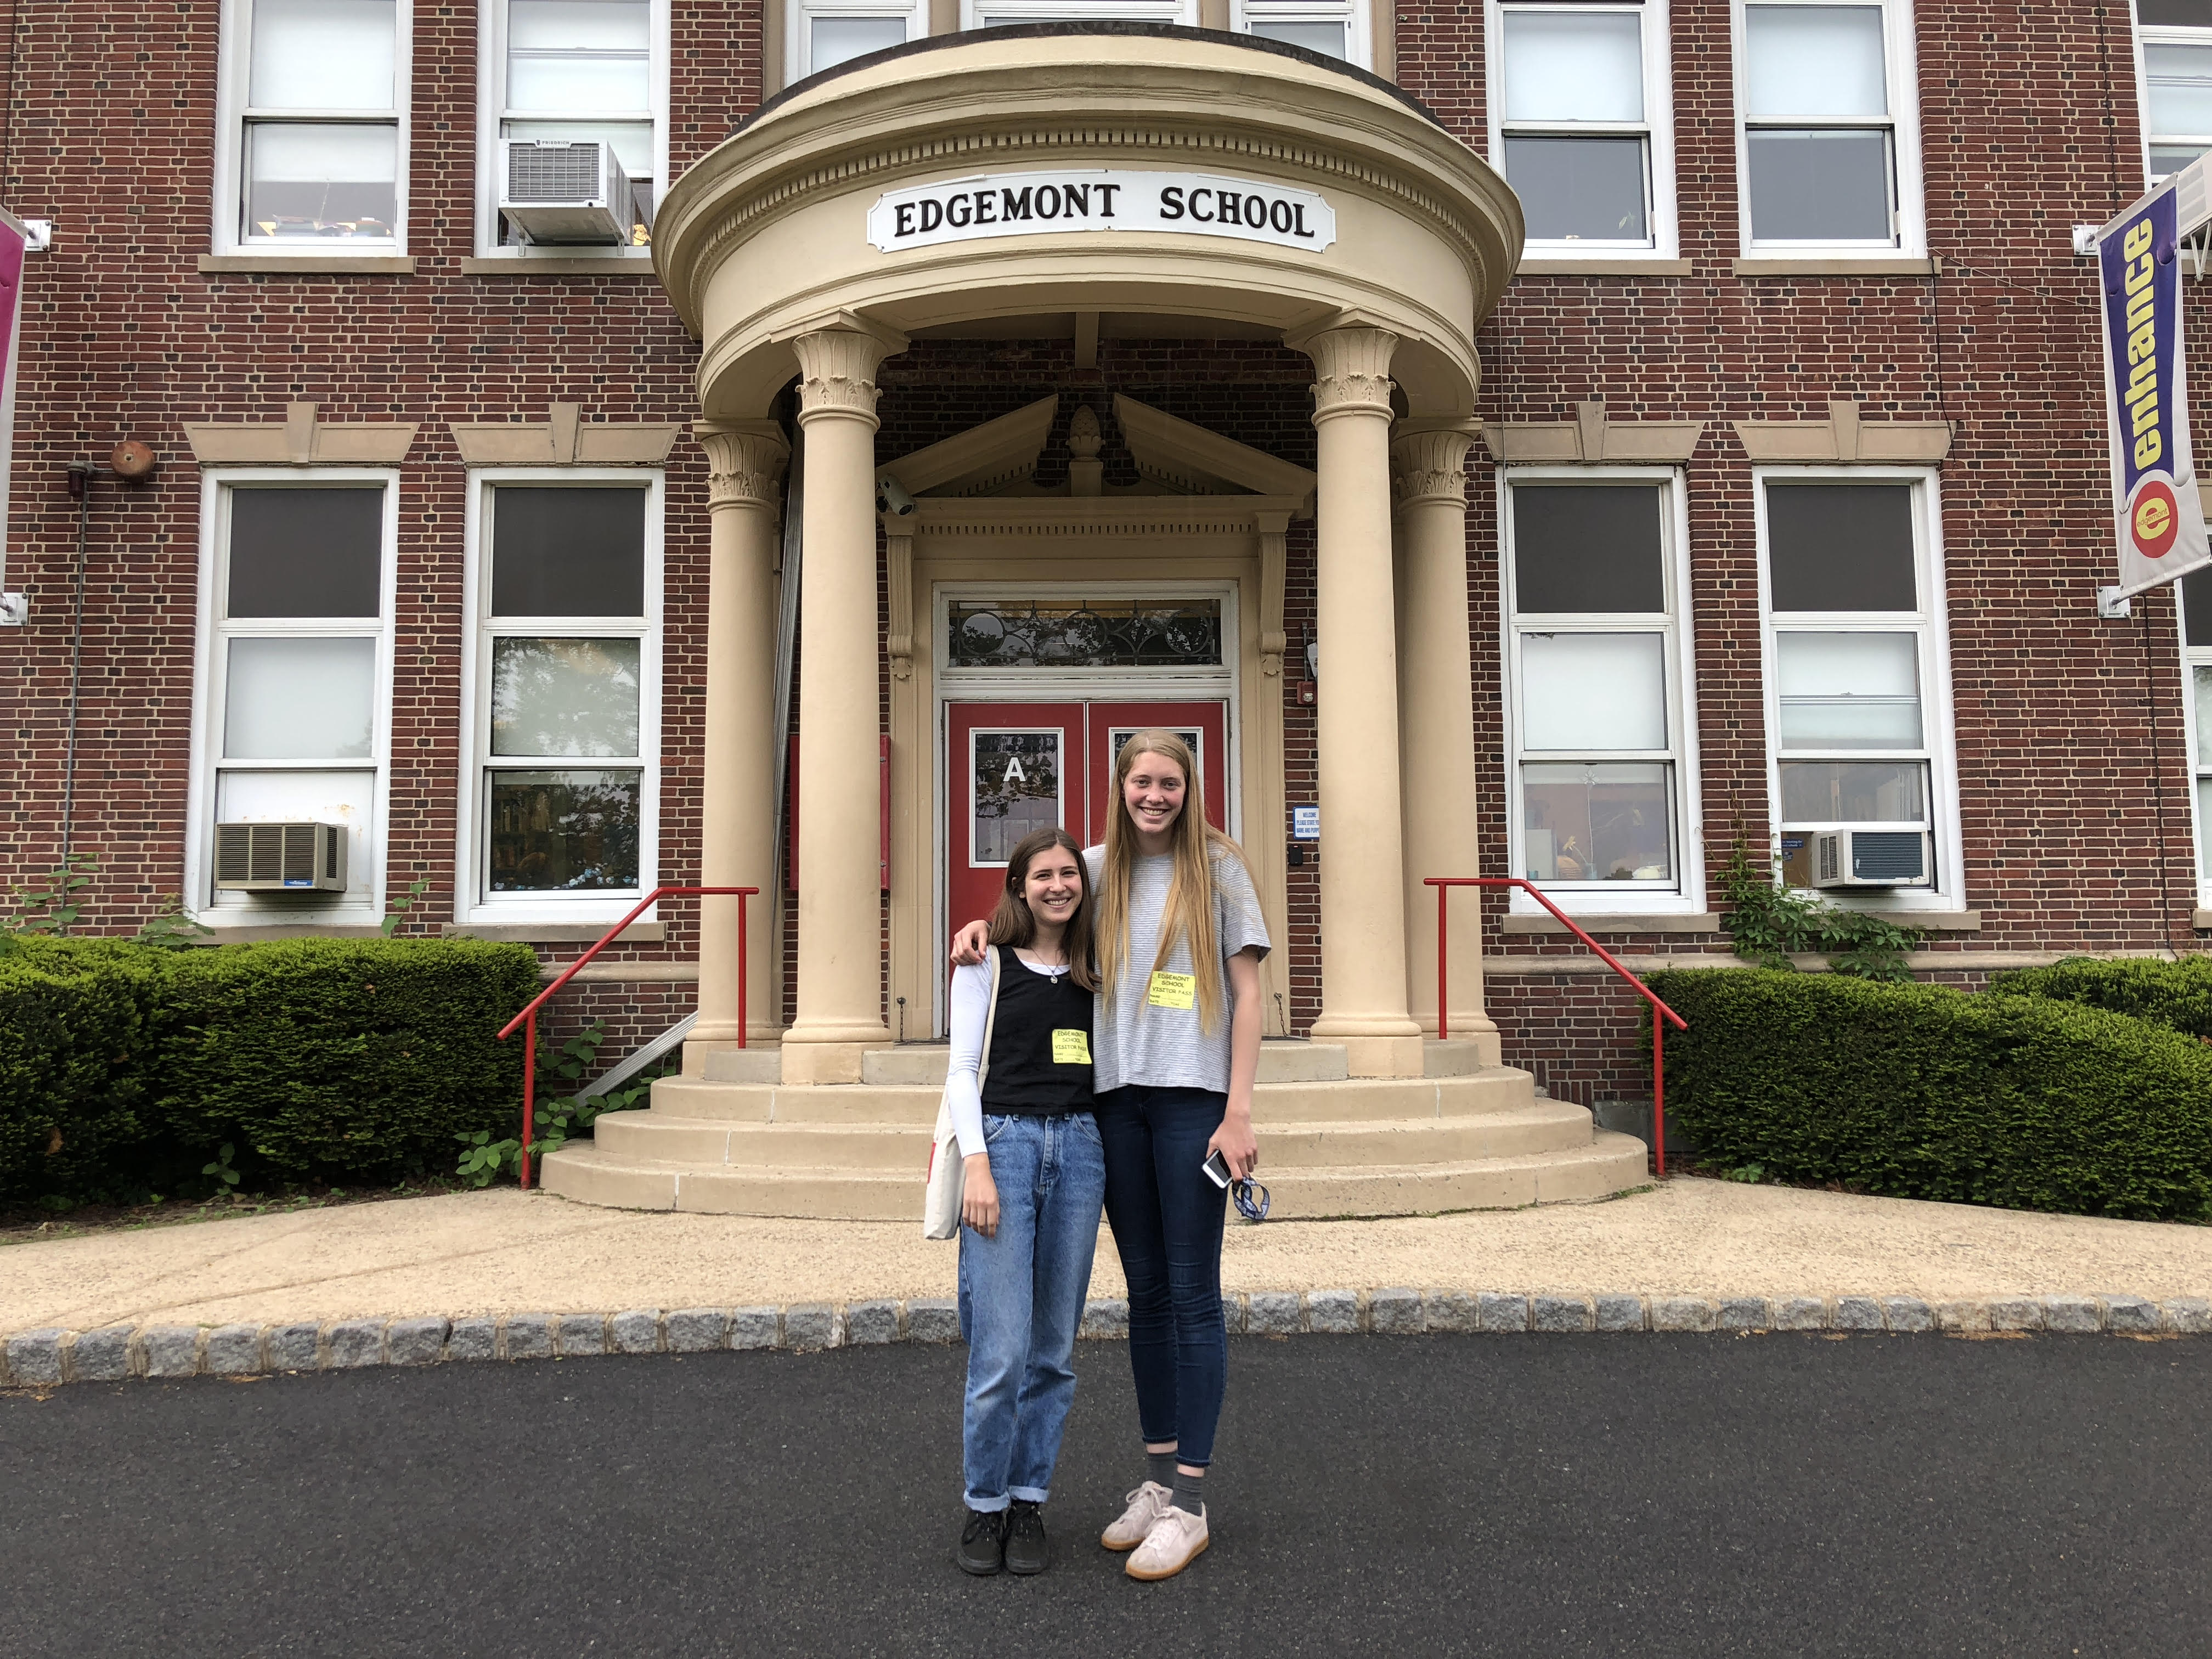 Kayla Phillips (left) and Lily Kelleher (right), Outside of Edgemont Elementary School // Photo Courtesy of